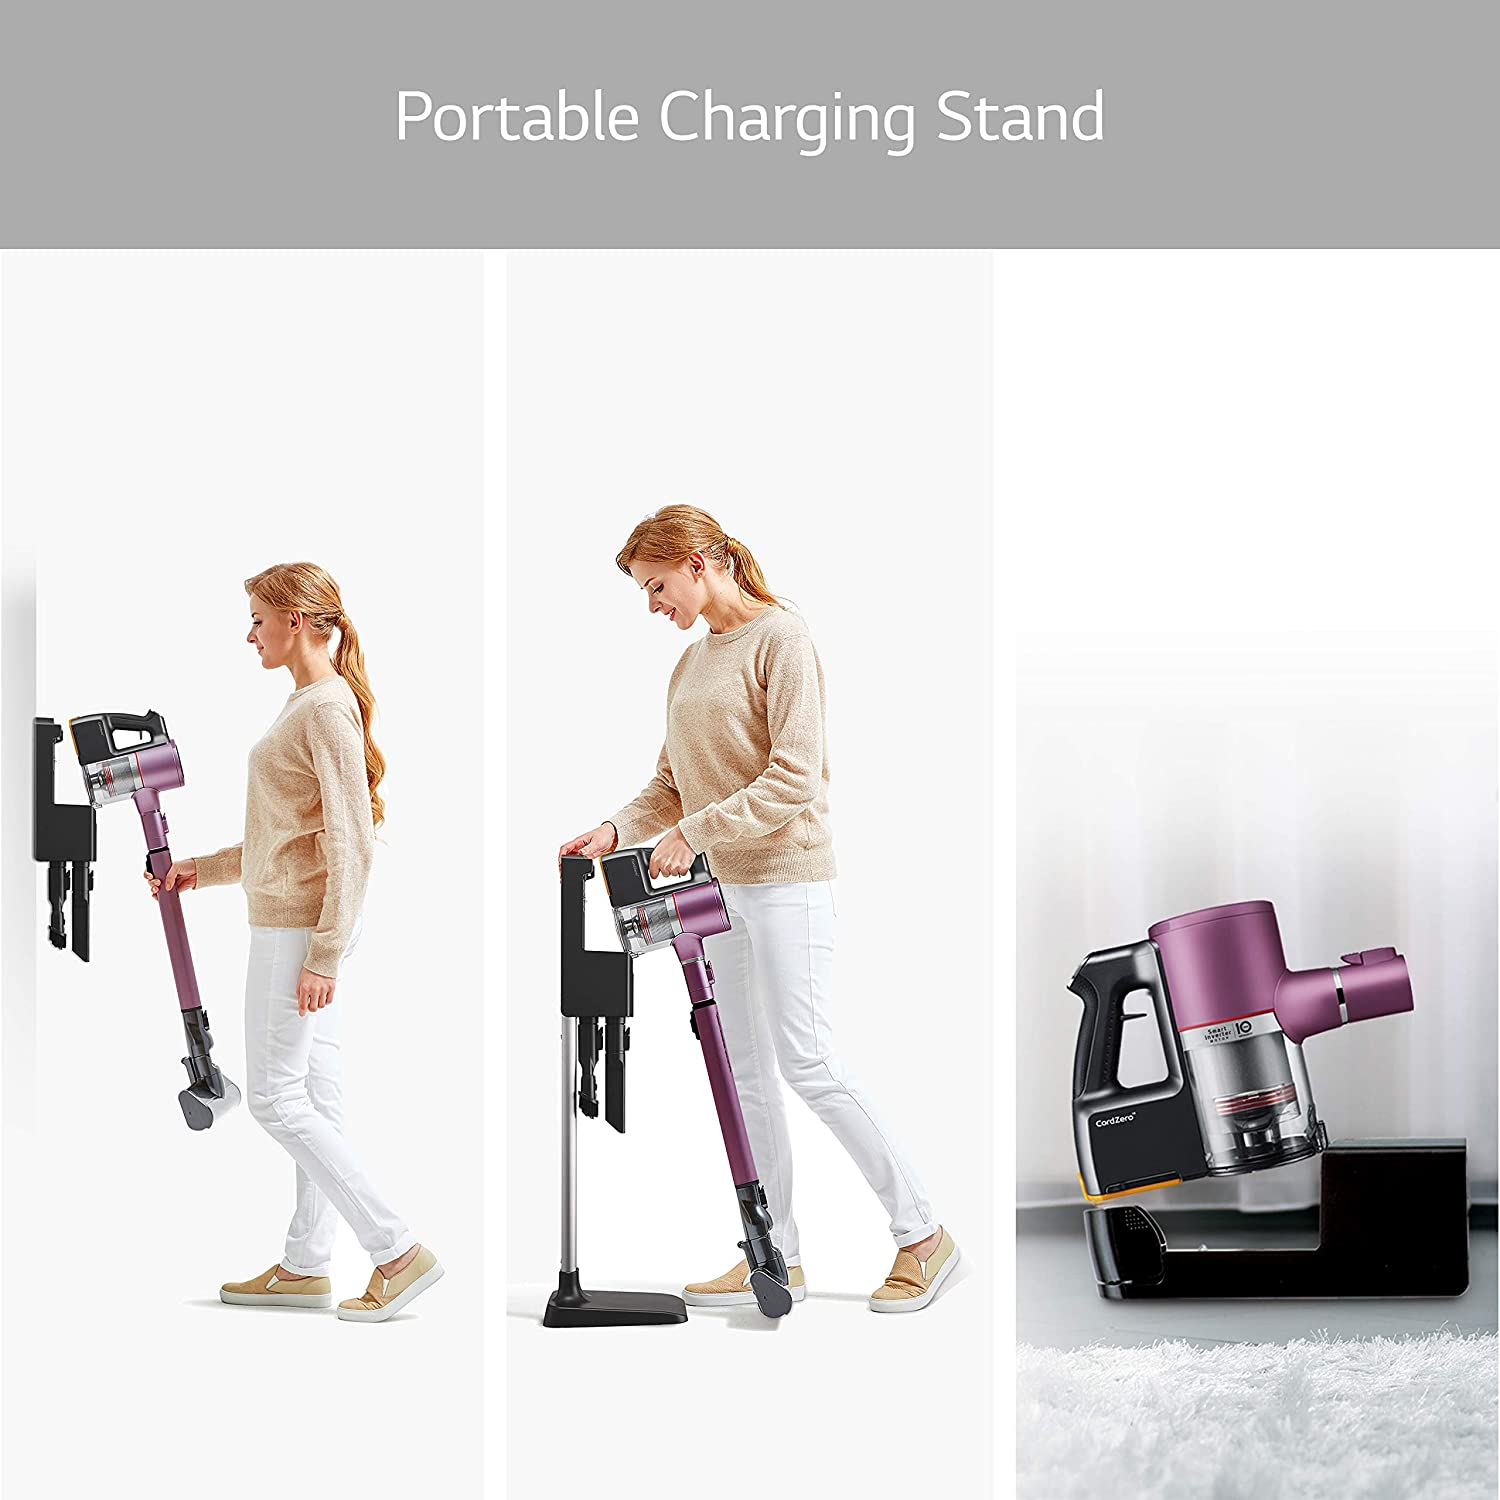 Floor cleaning machine for home